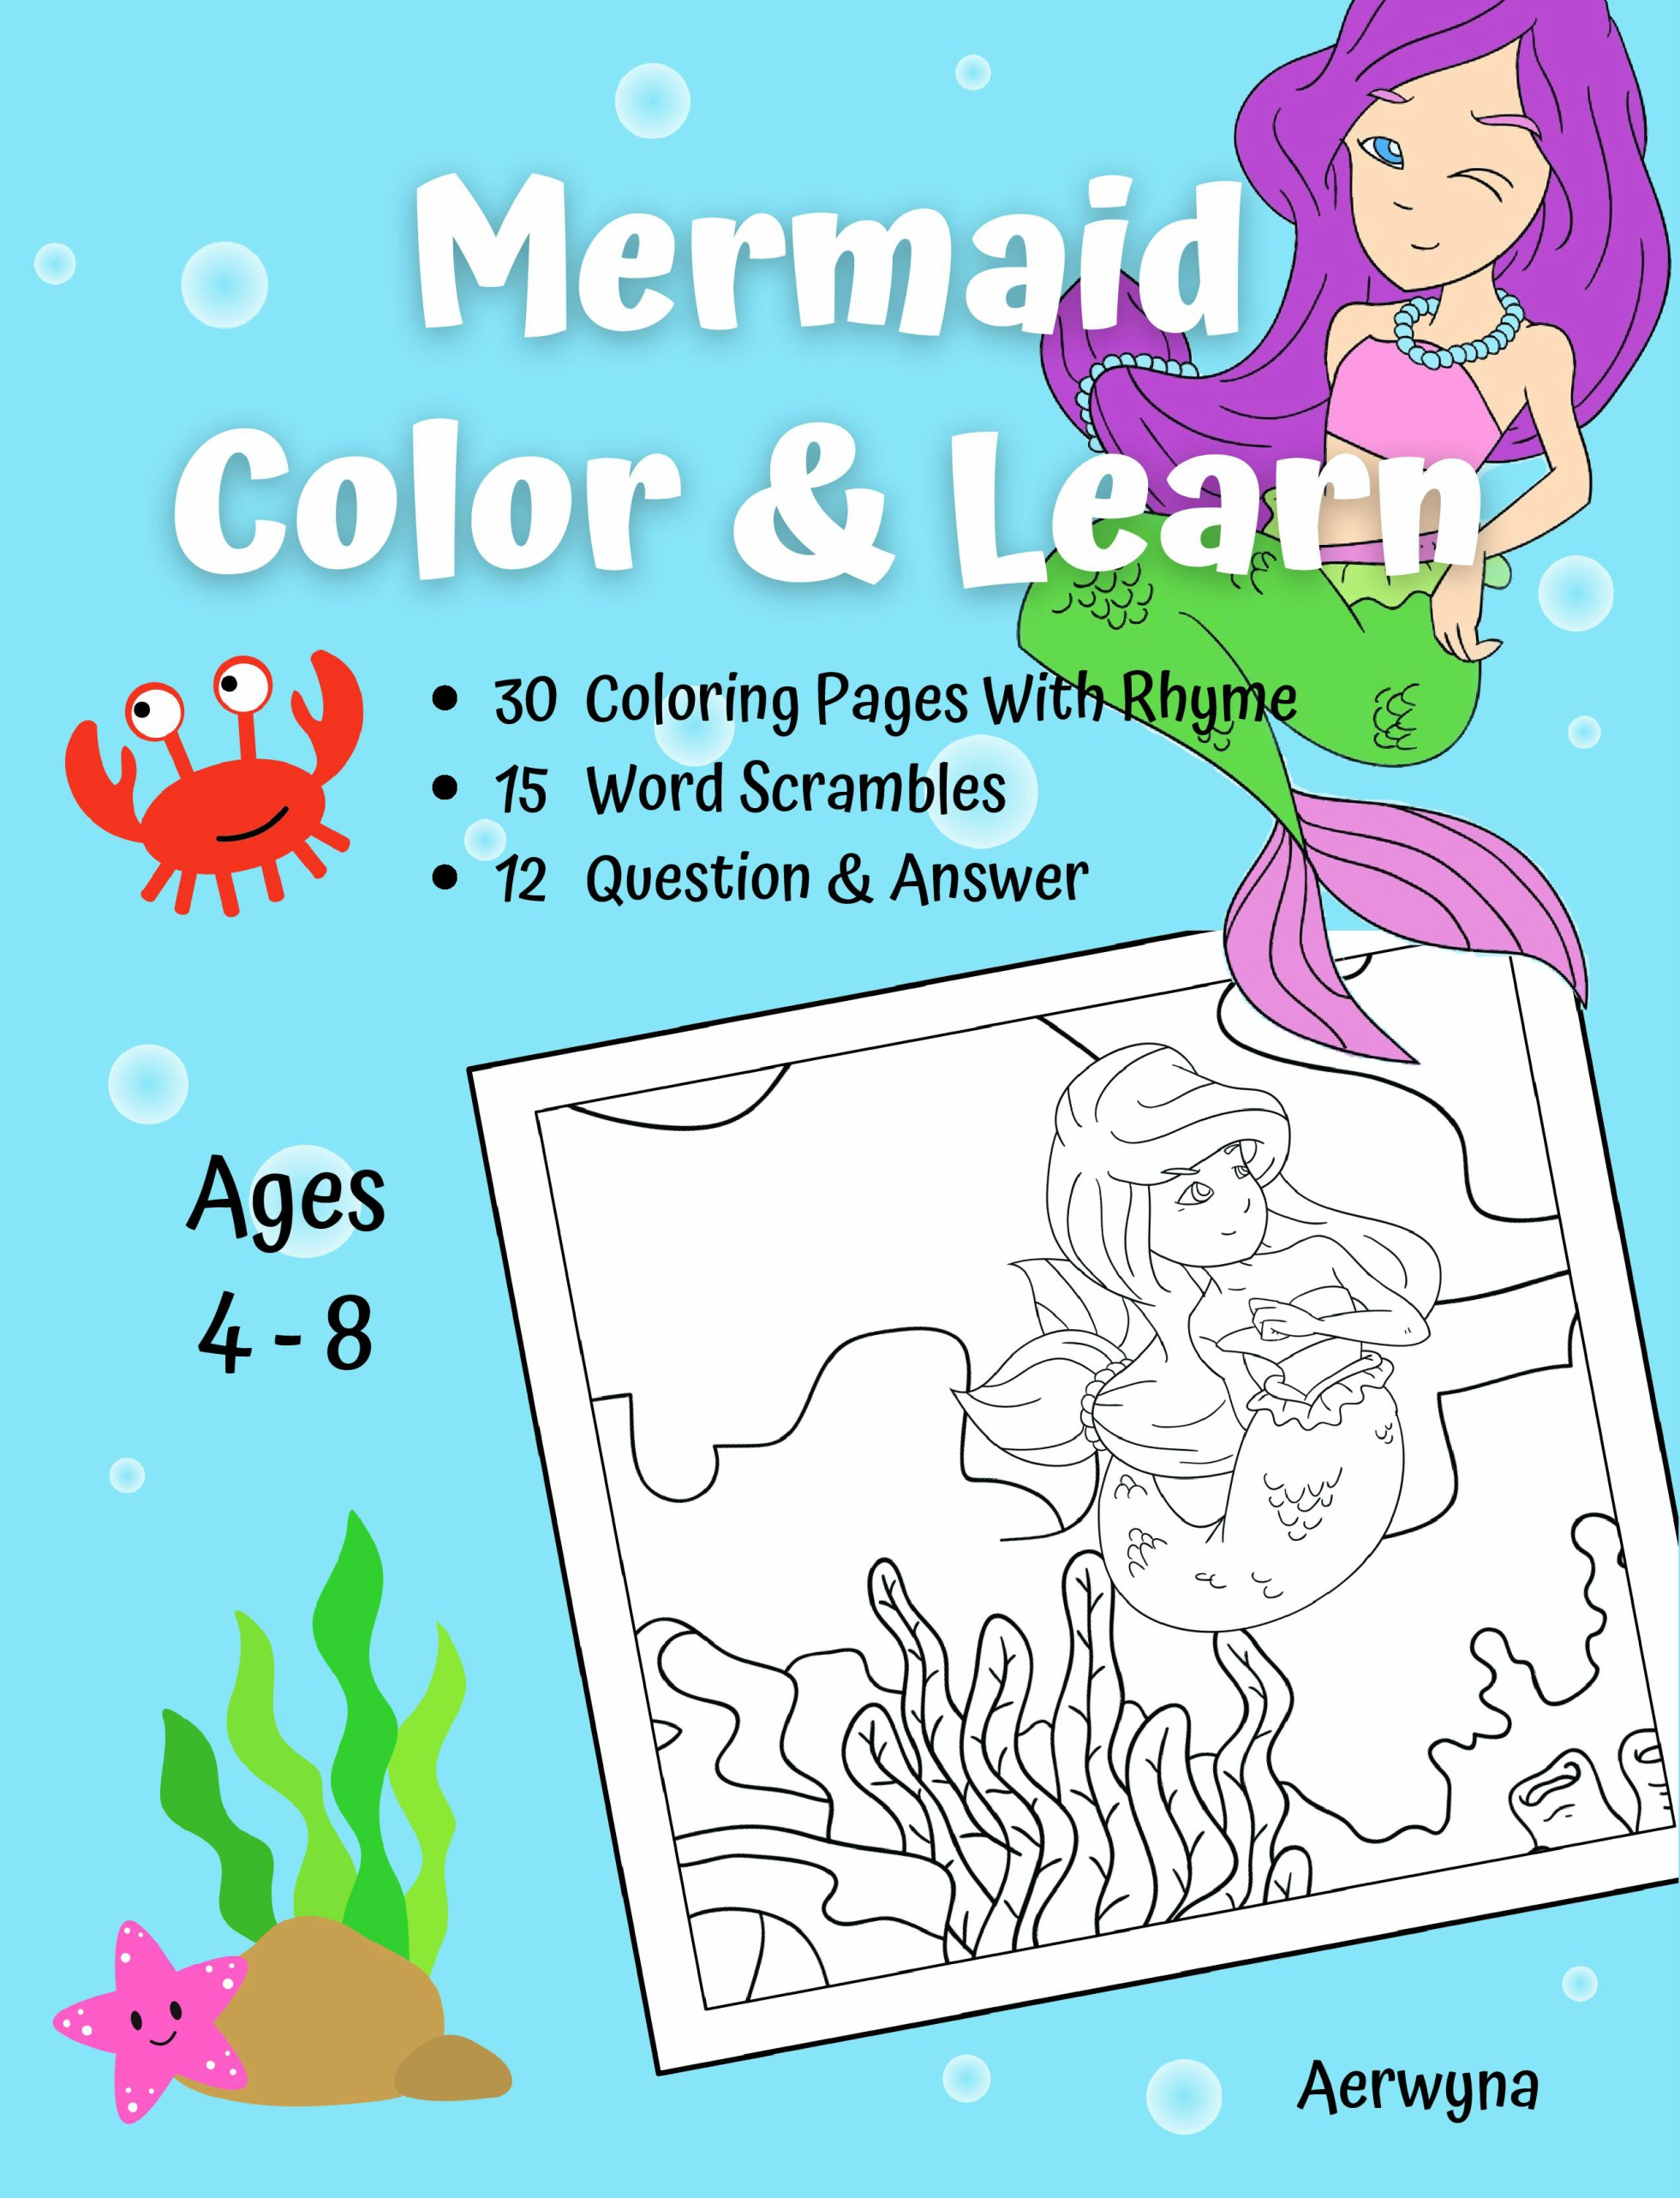 Mermaid Color & Learn